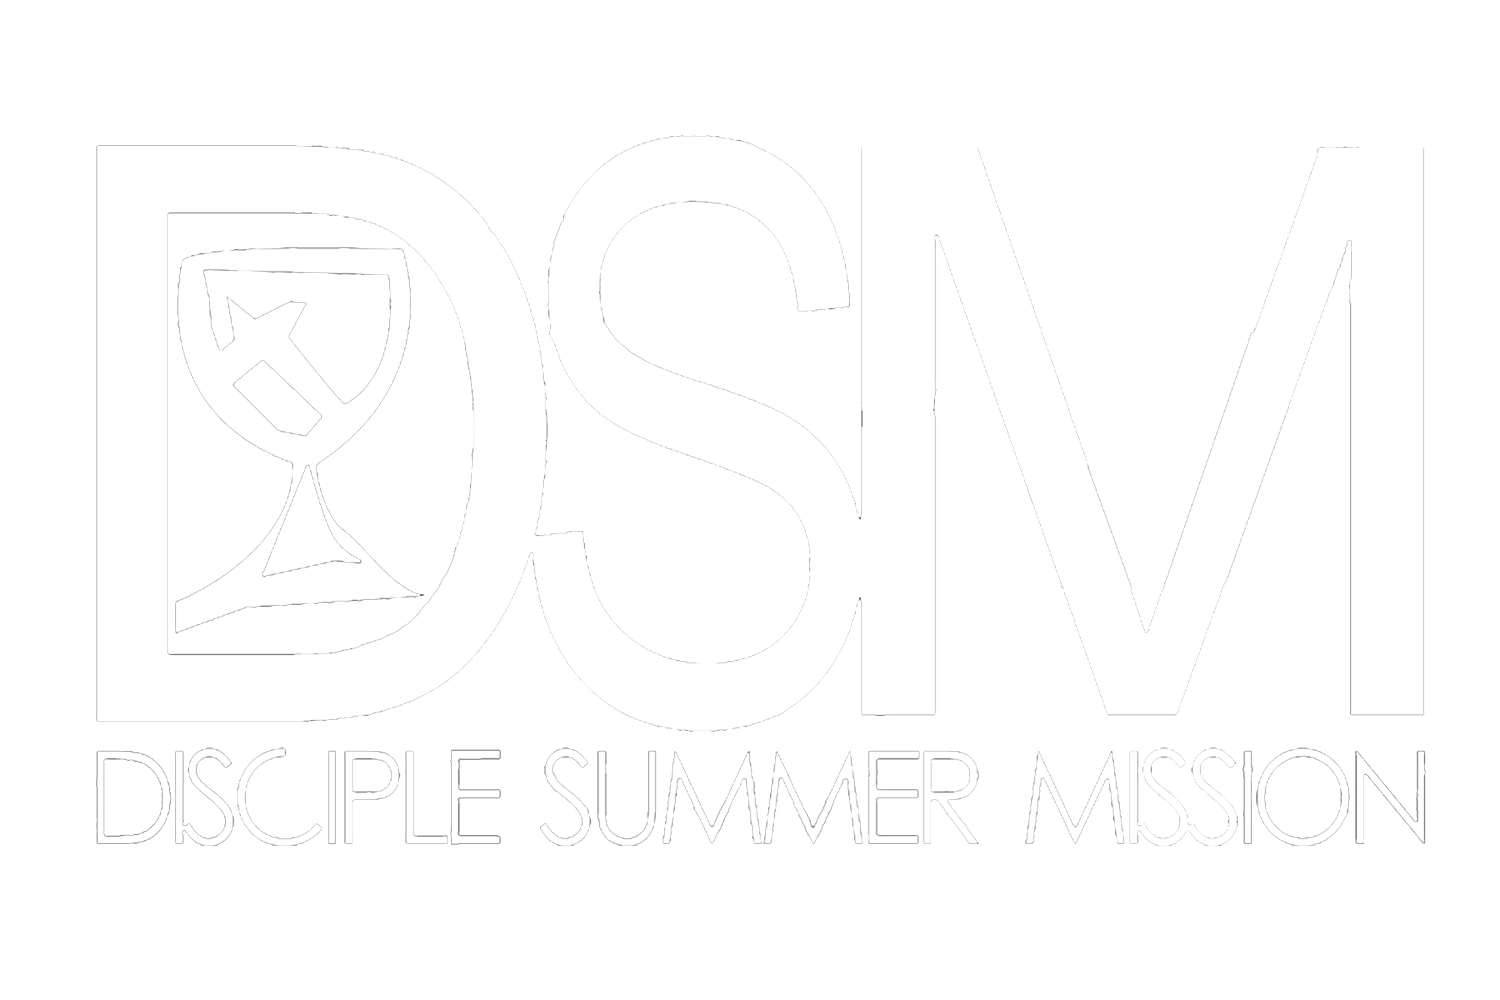 Disciple Summer Mission